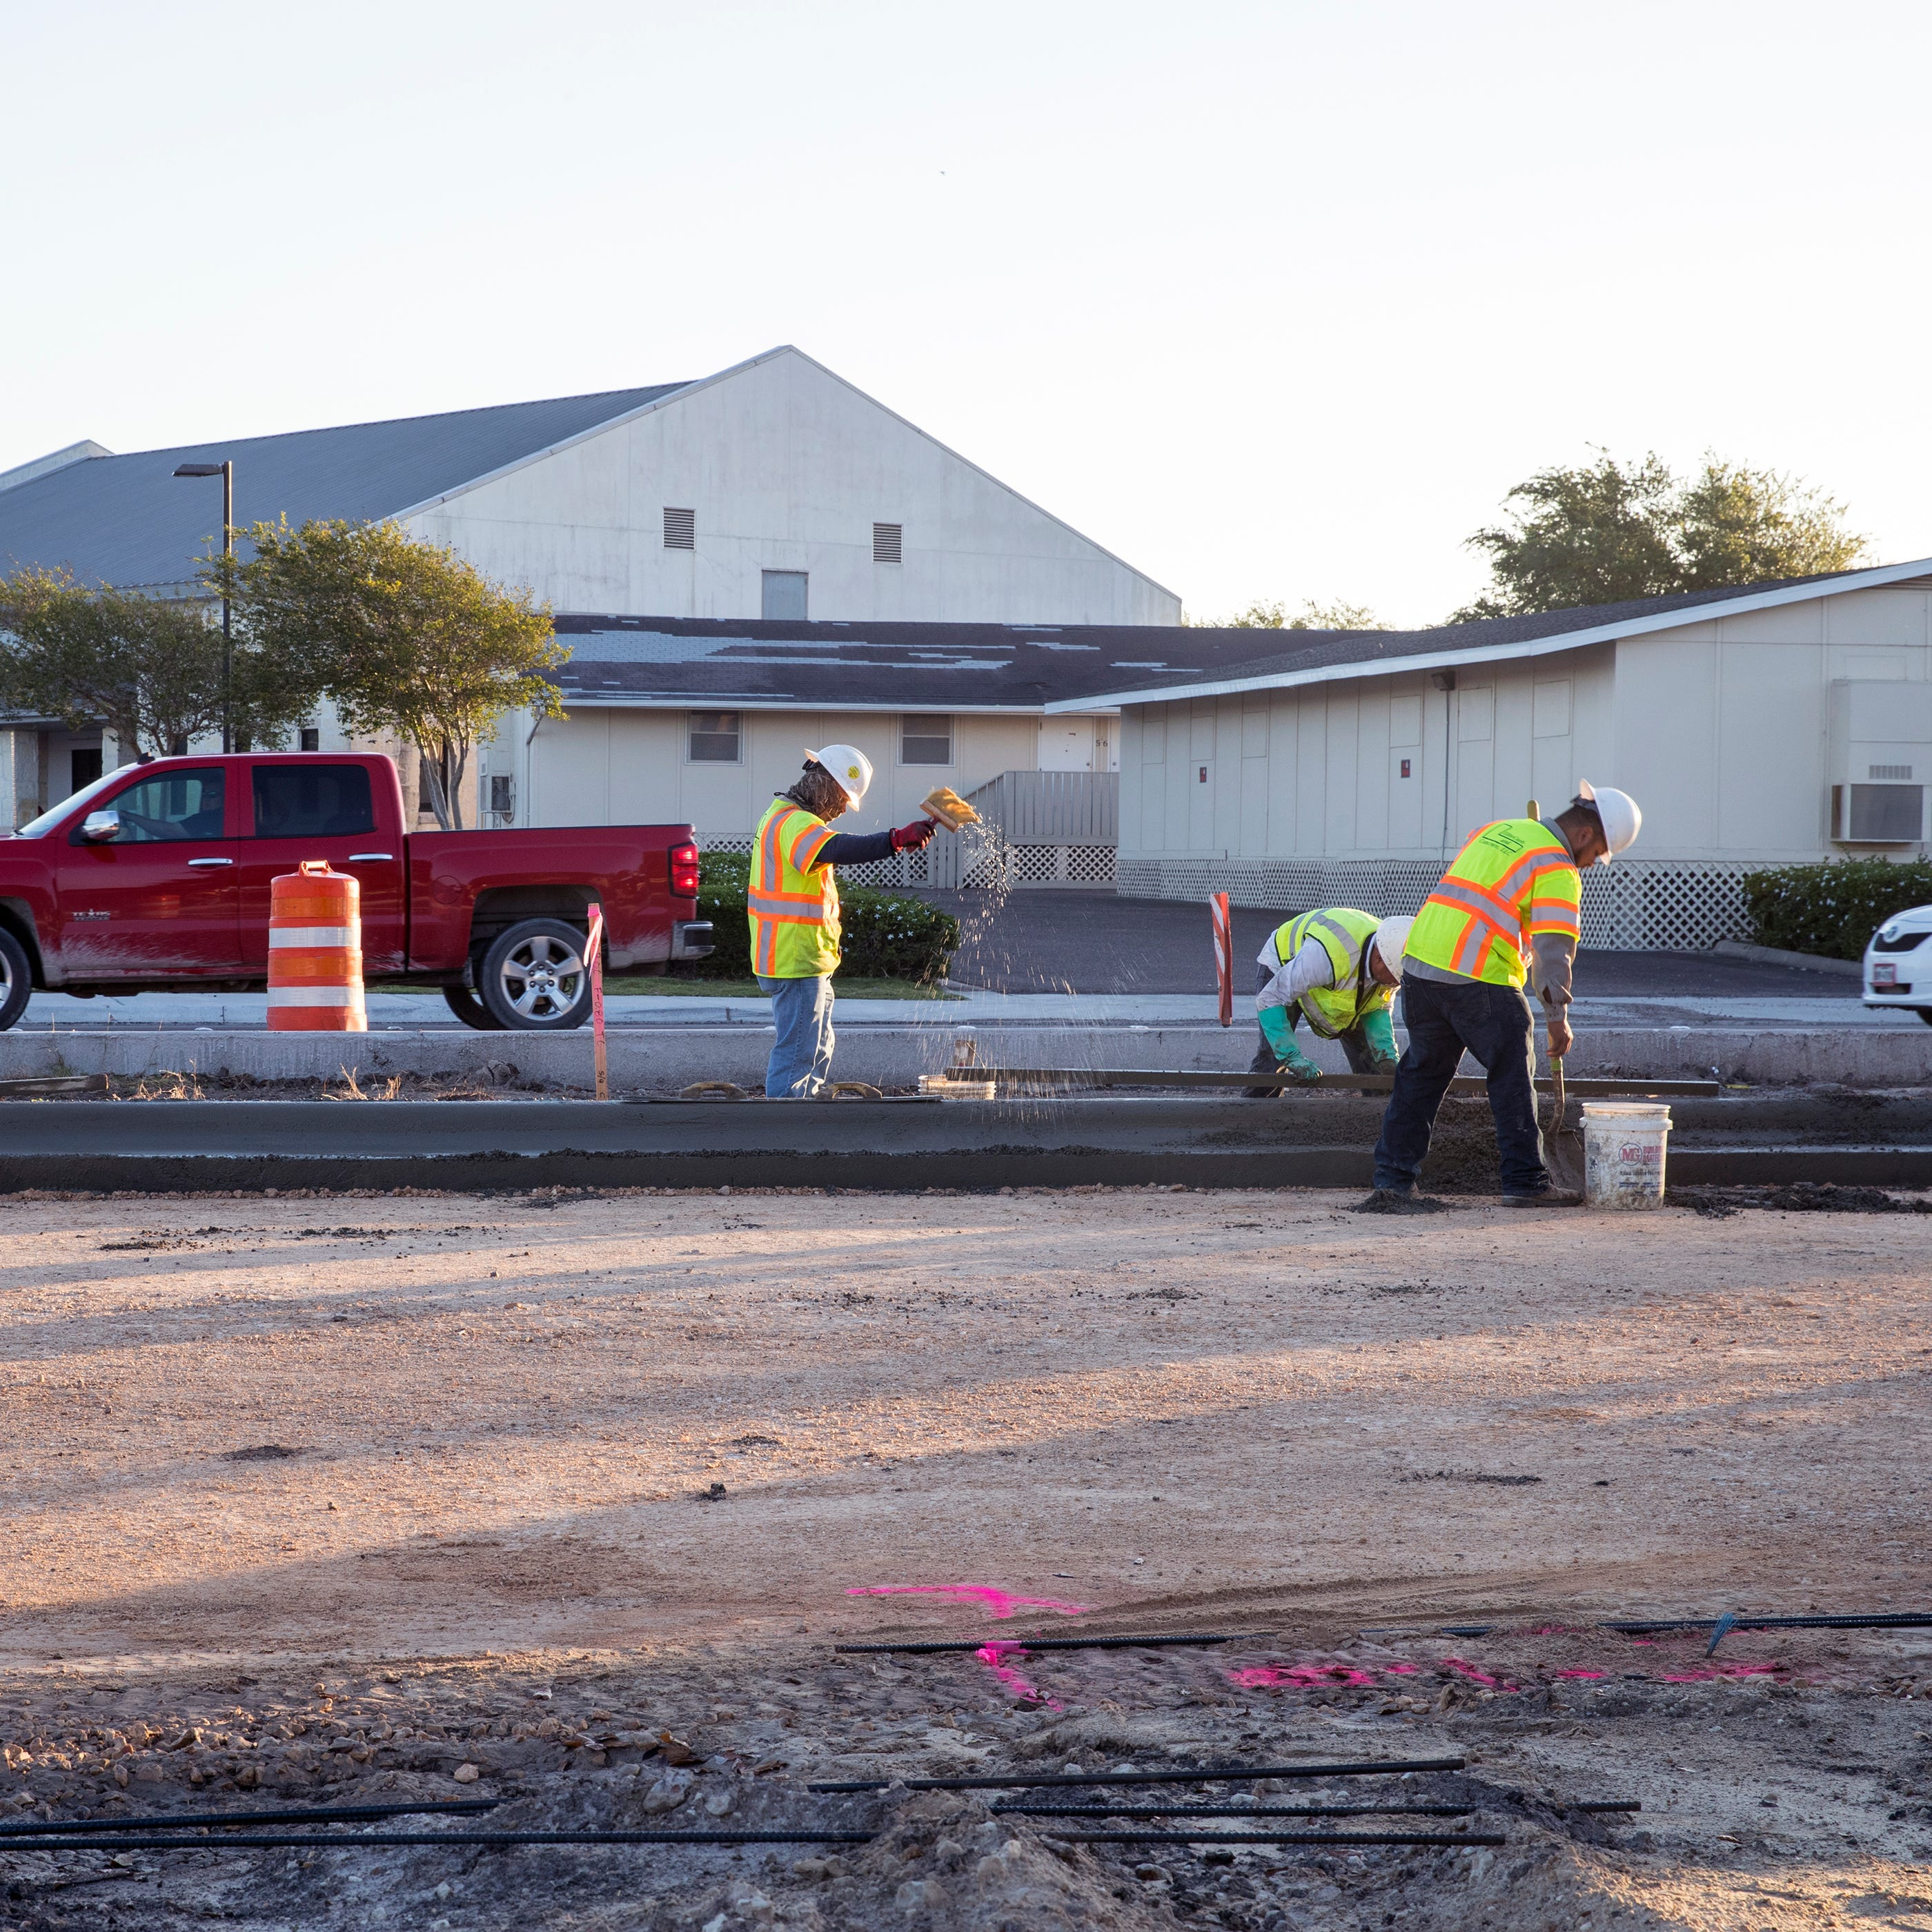 Construction on major Southside Corpus Christi road will be complete in April